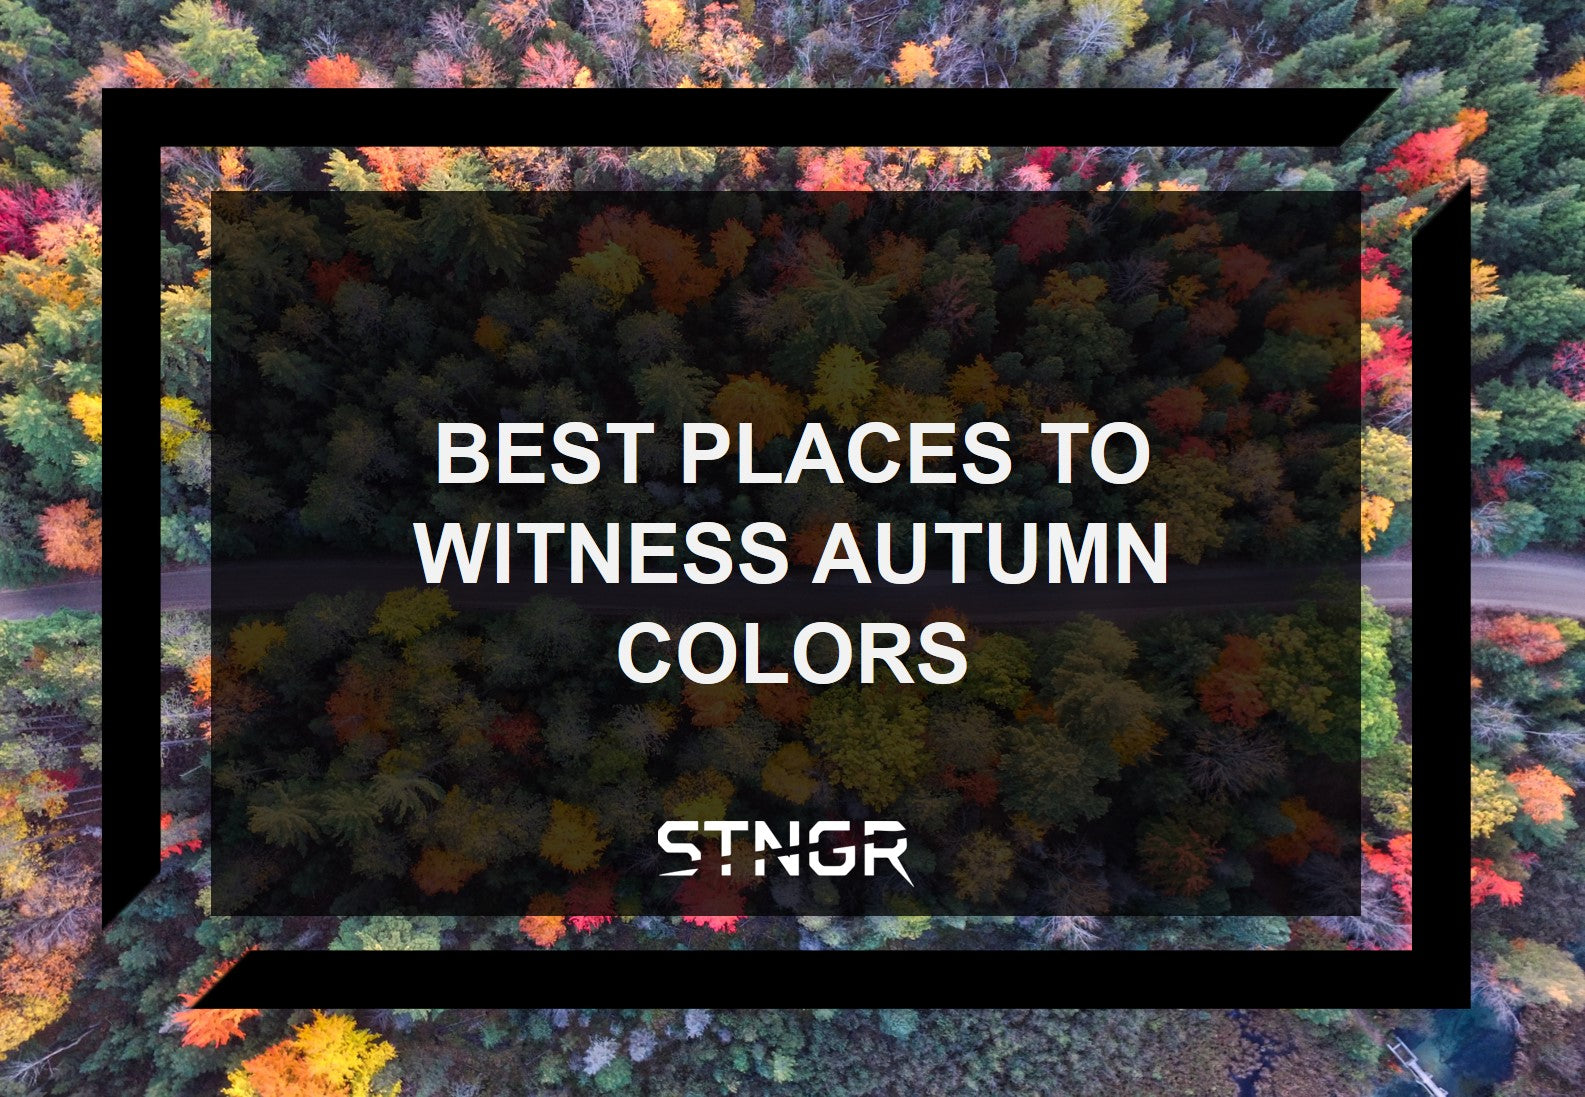 Best Places To Witness Autumn Colors